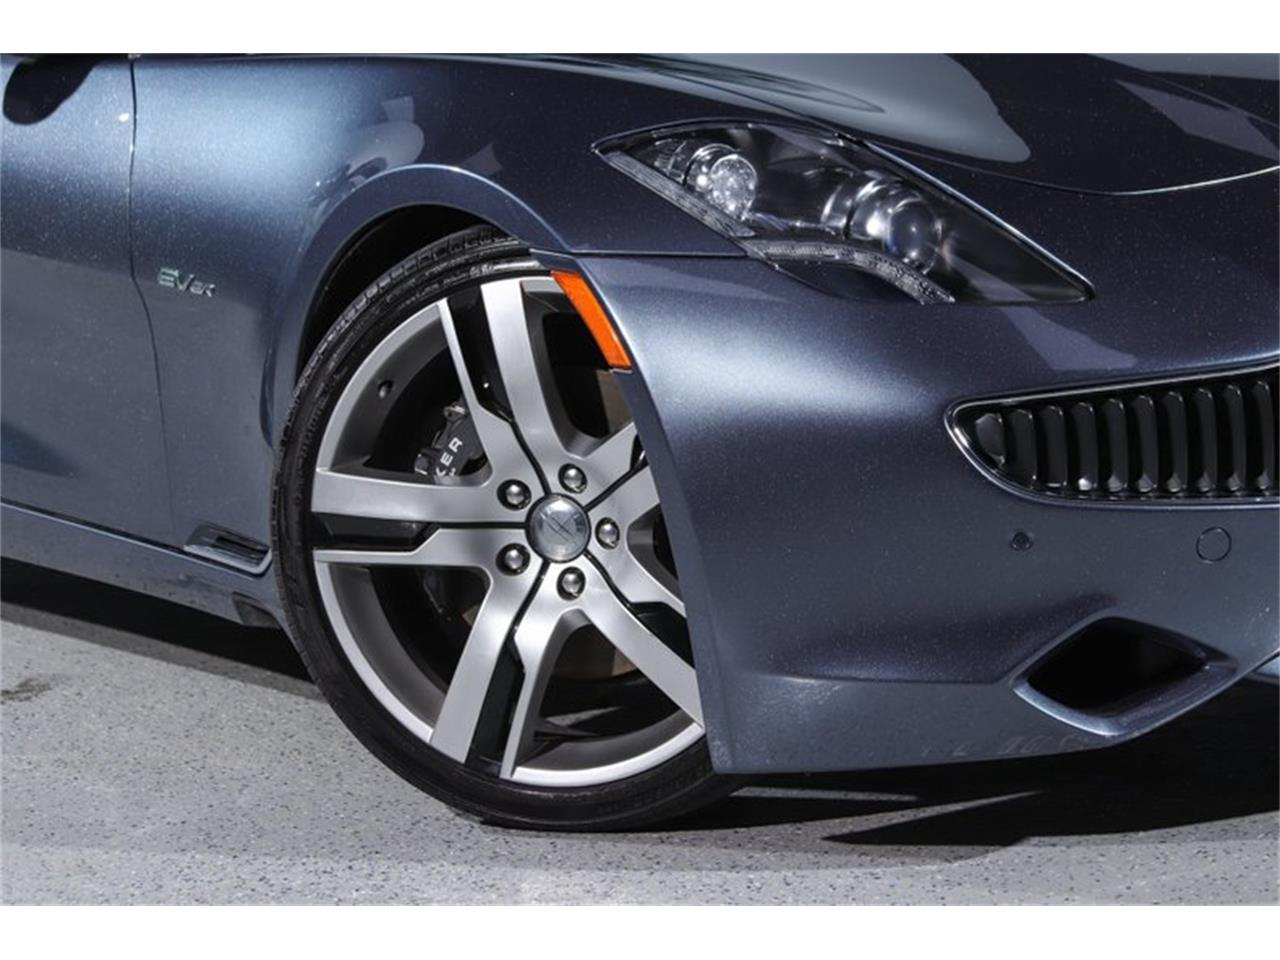 2012 Fisker Karma for sale in New Hyde Park, NY – photo 14